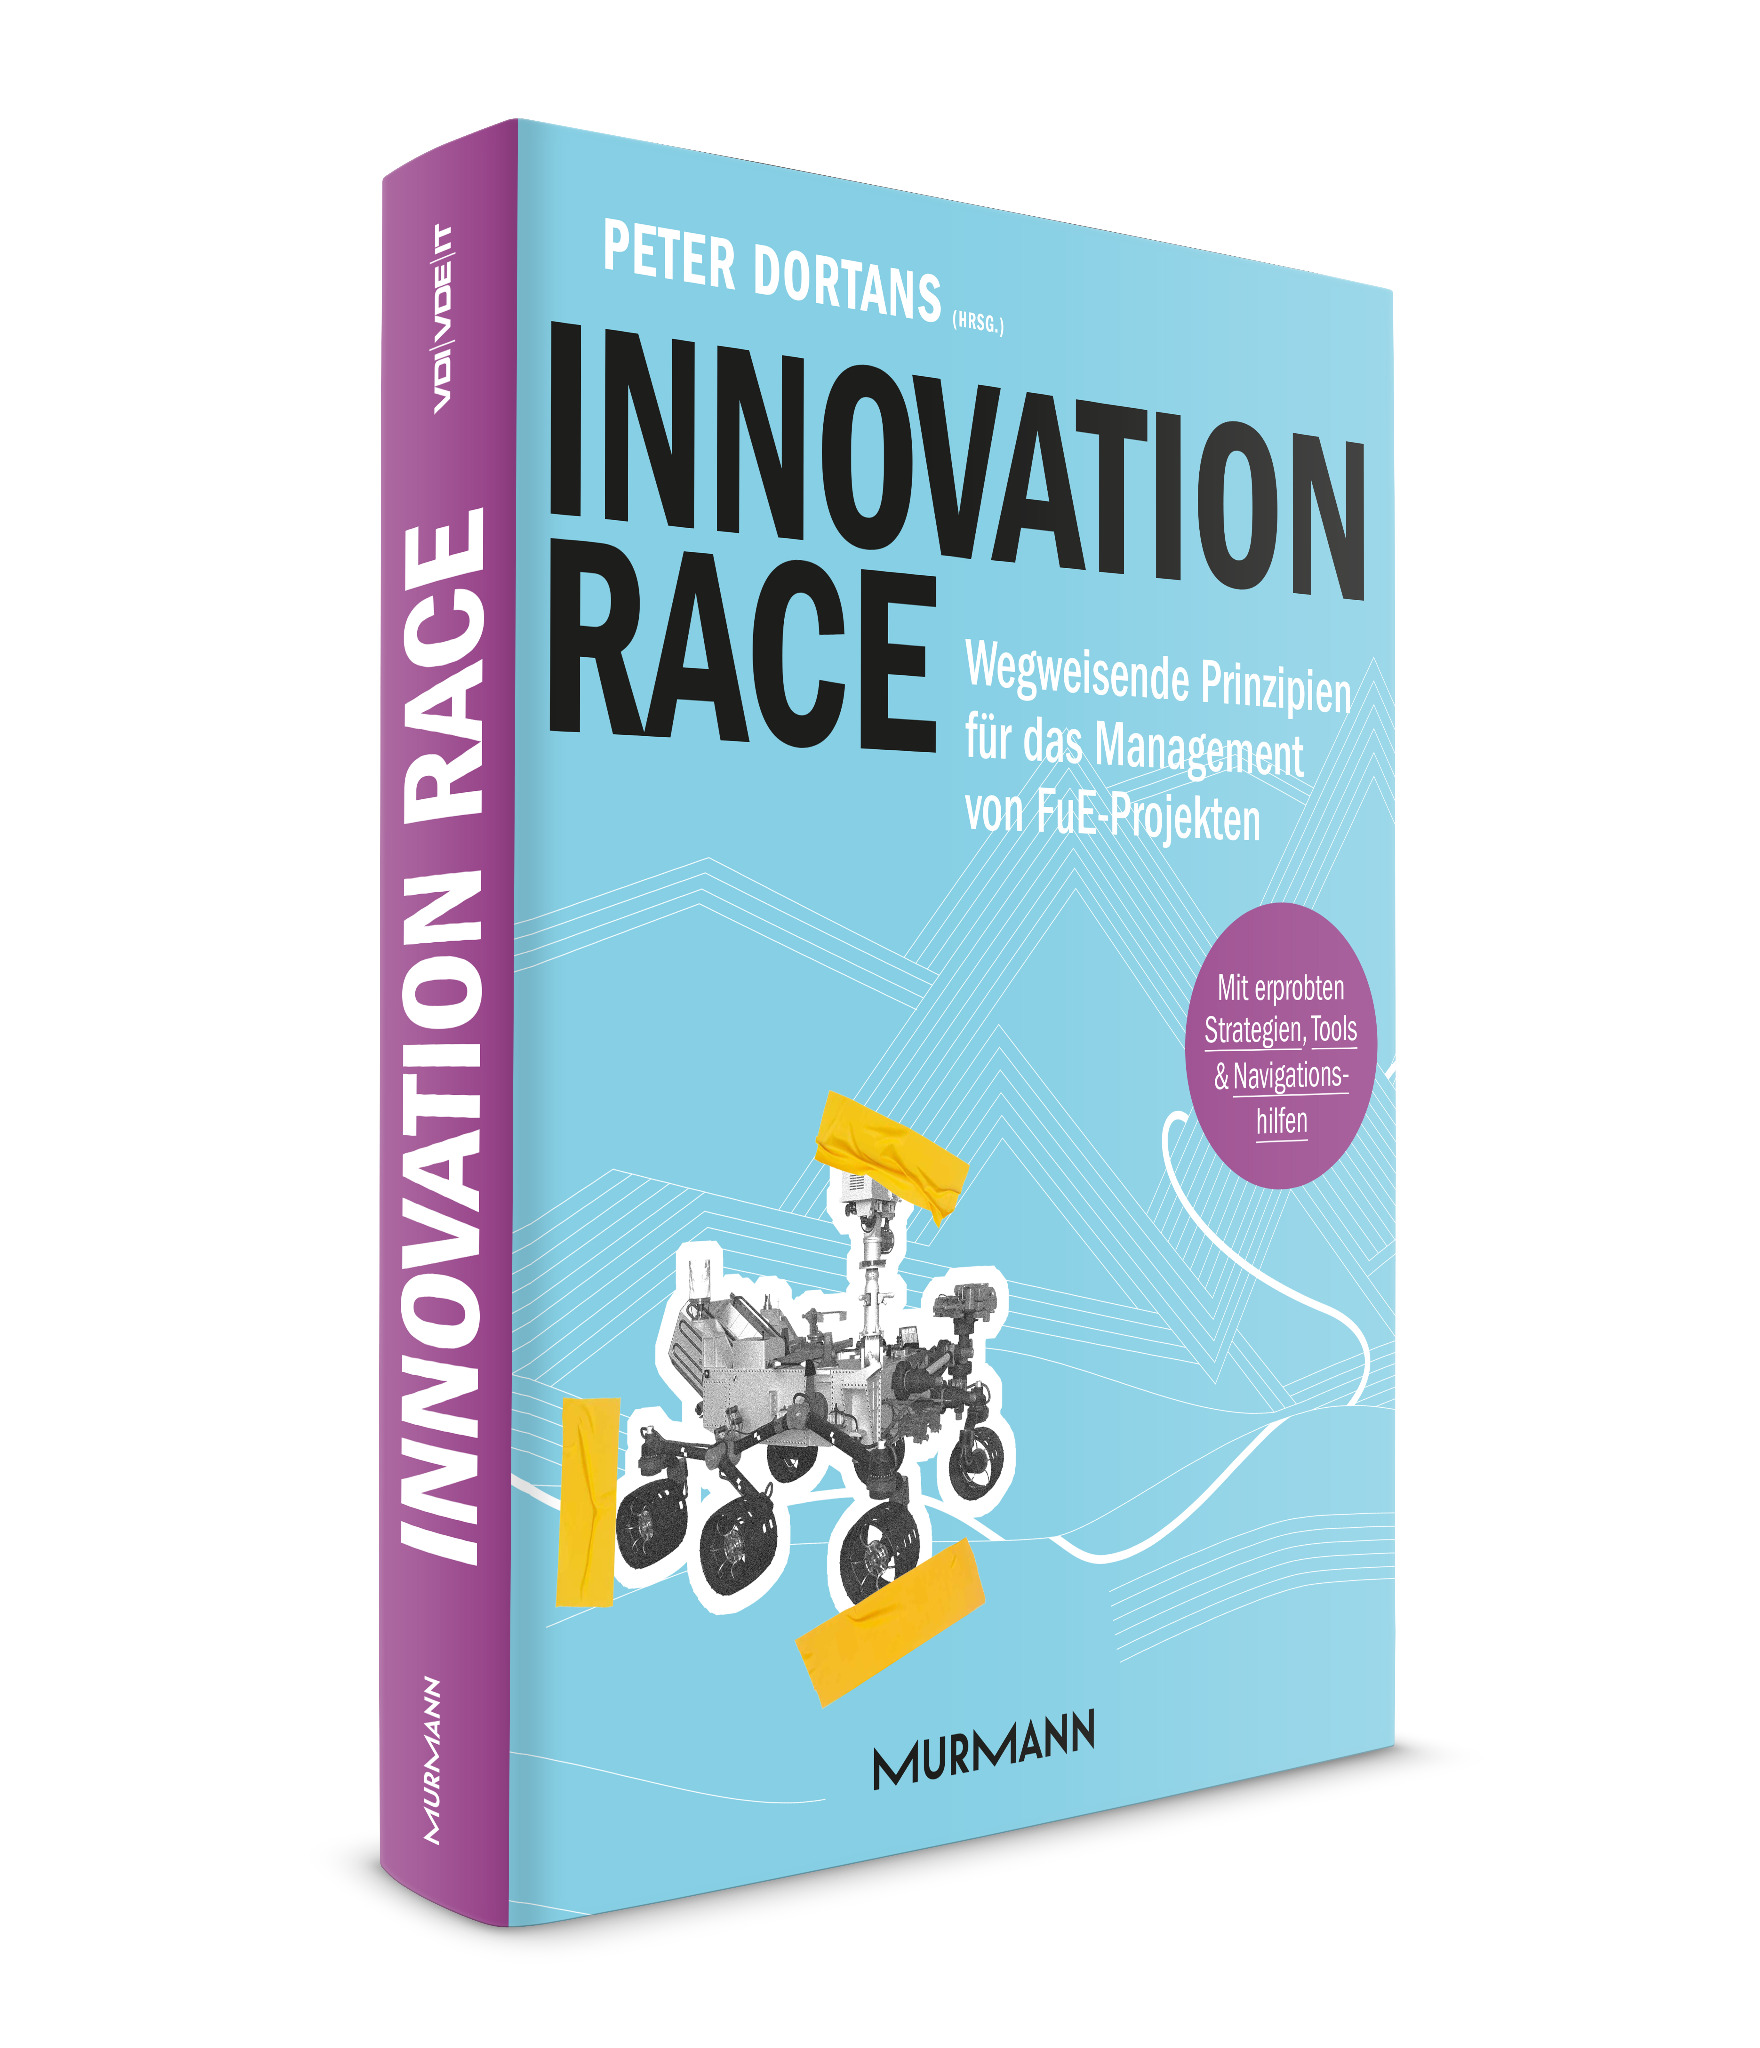 *Innovation Race/ Peter Dortans